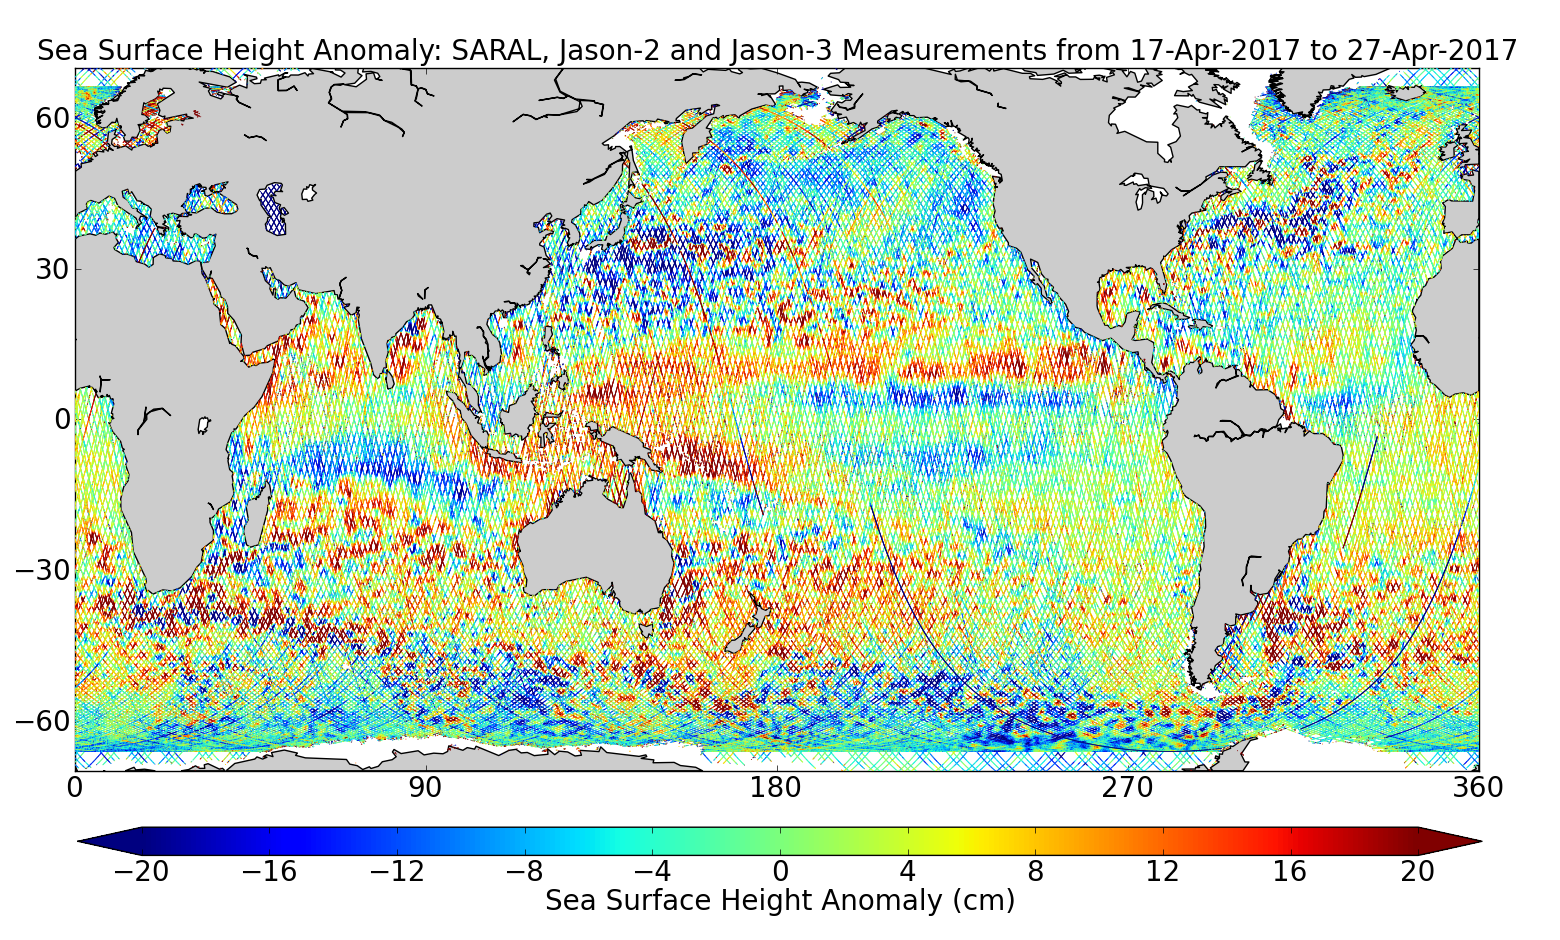 Sea Surface Height Anomaly: SARAL, Jason-2 and Jason-3 Measurements from 17-Apr-2017 to 27-Apr-2017